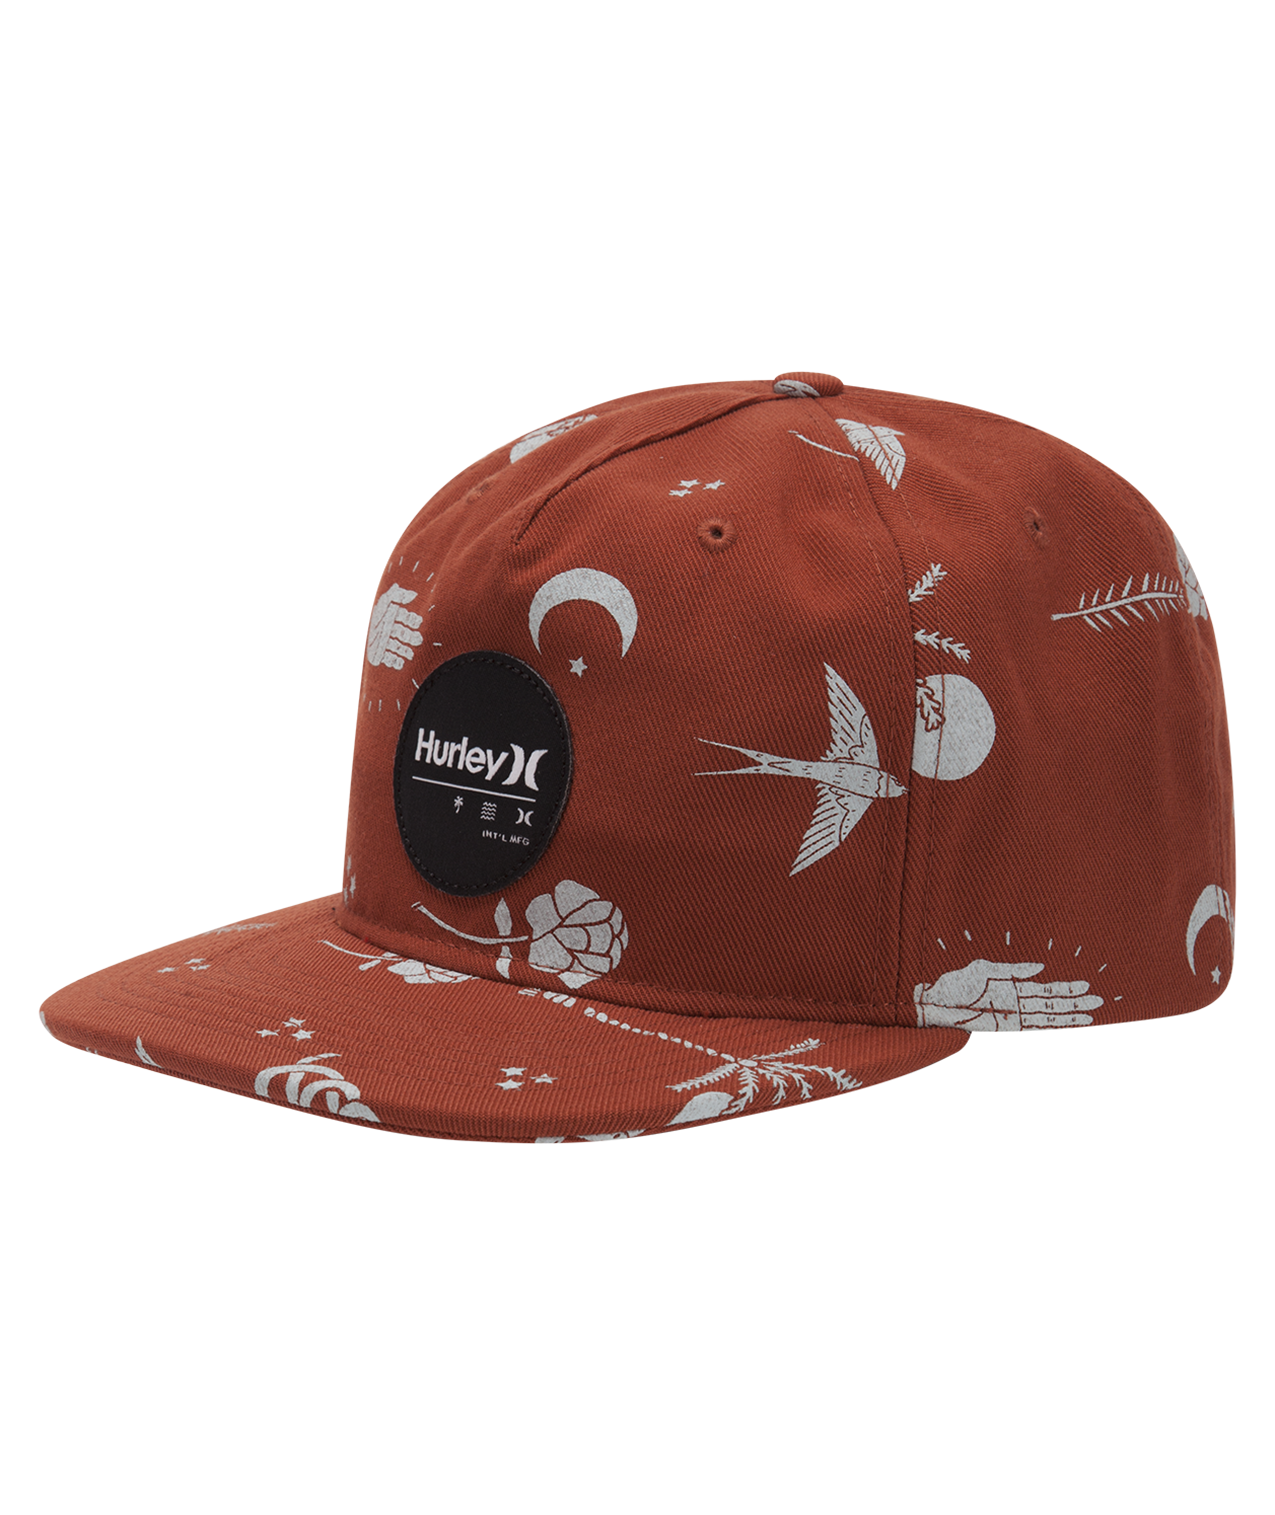 HURLEY M PORT CRUISER HAT 689